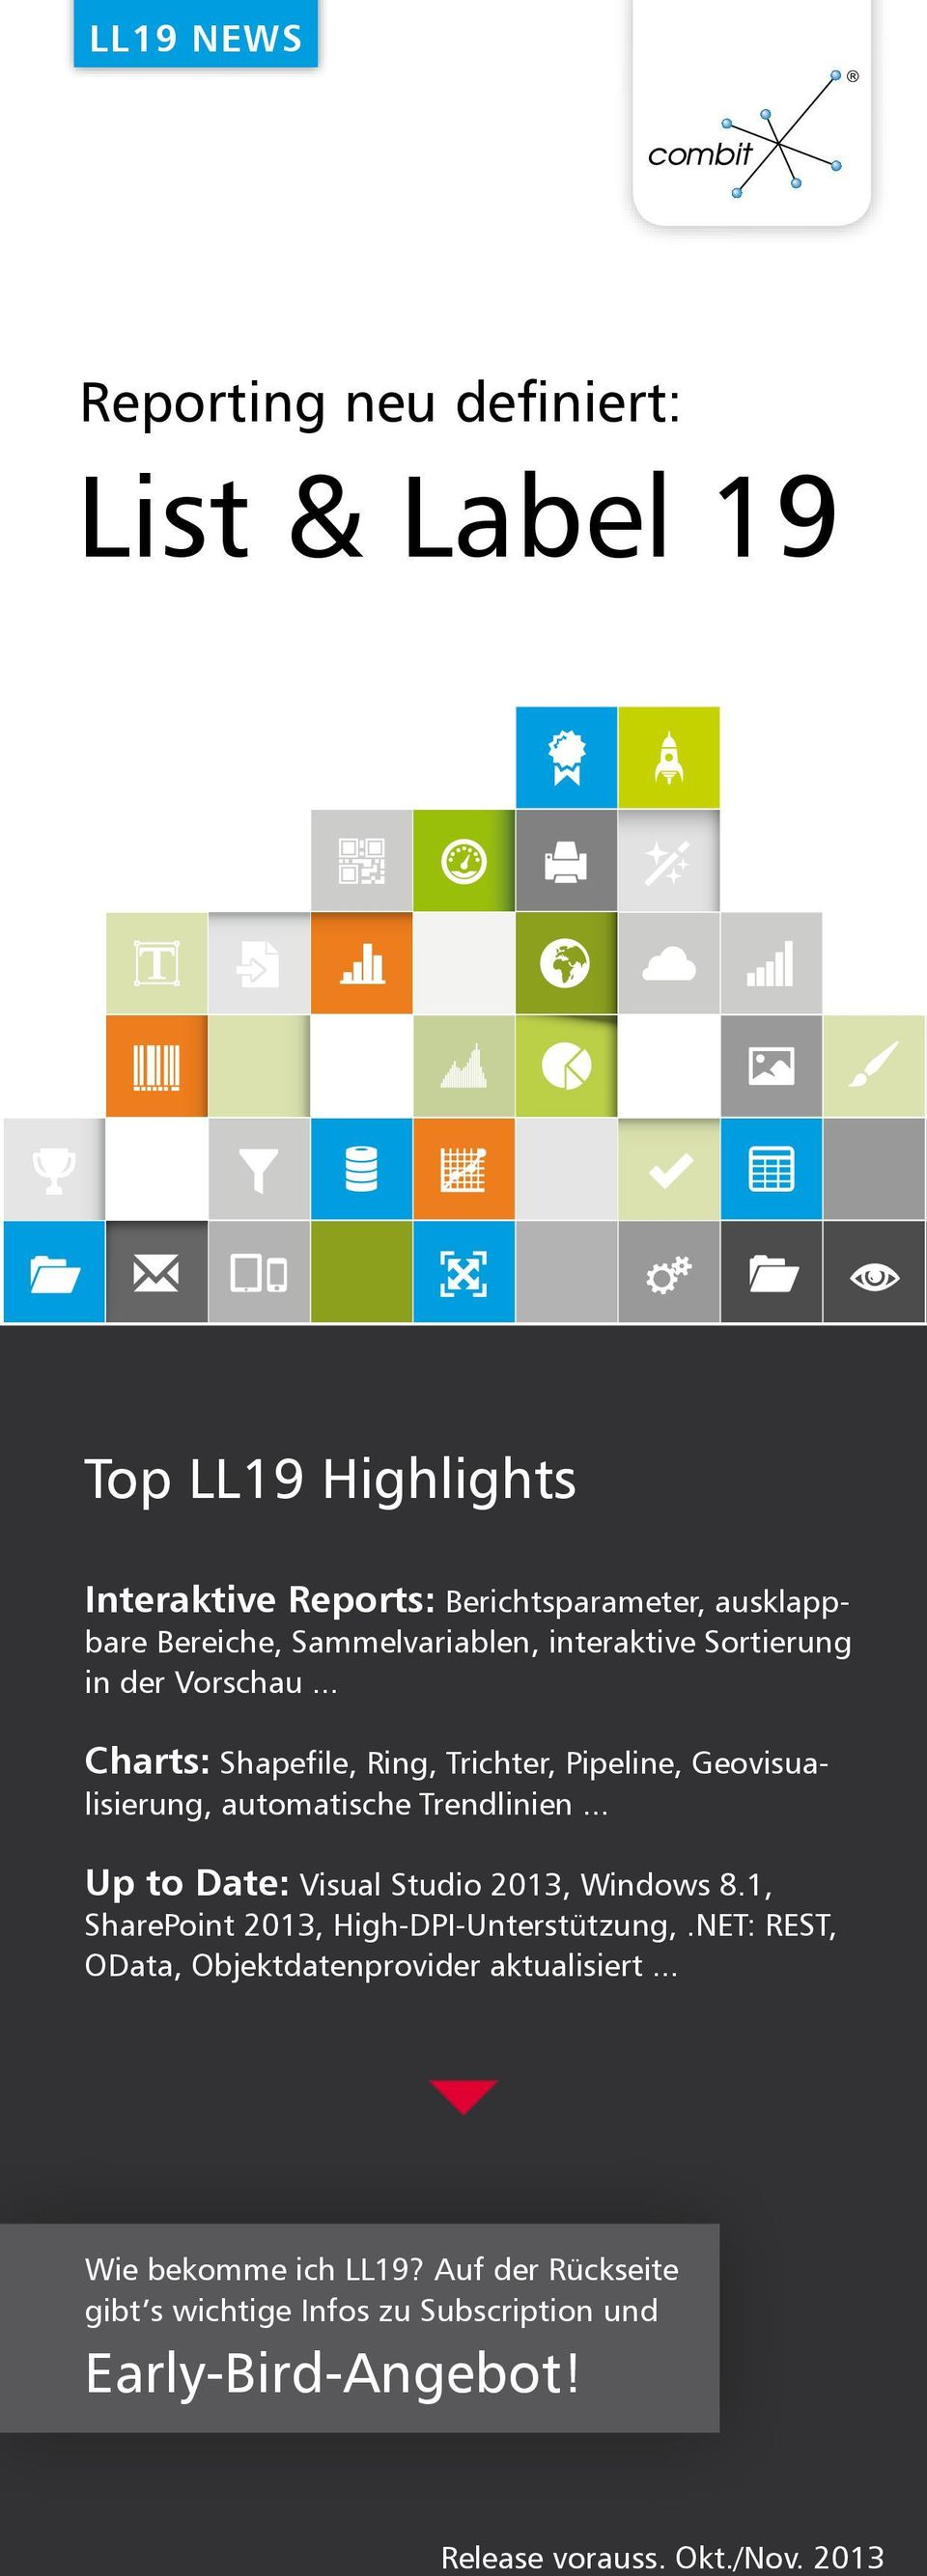 .. Charts: Shapefile, Ring, Trichter, Pipeline, Geovisualisierung, automatische Trendlinien... Up to Date: Visual Studio 2013, Windows 8.